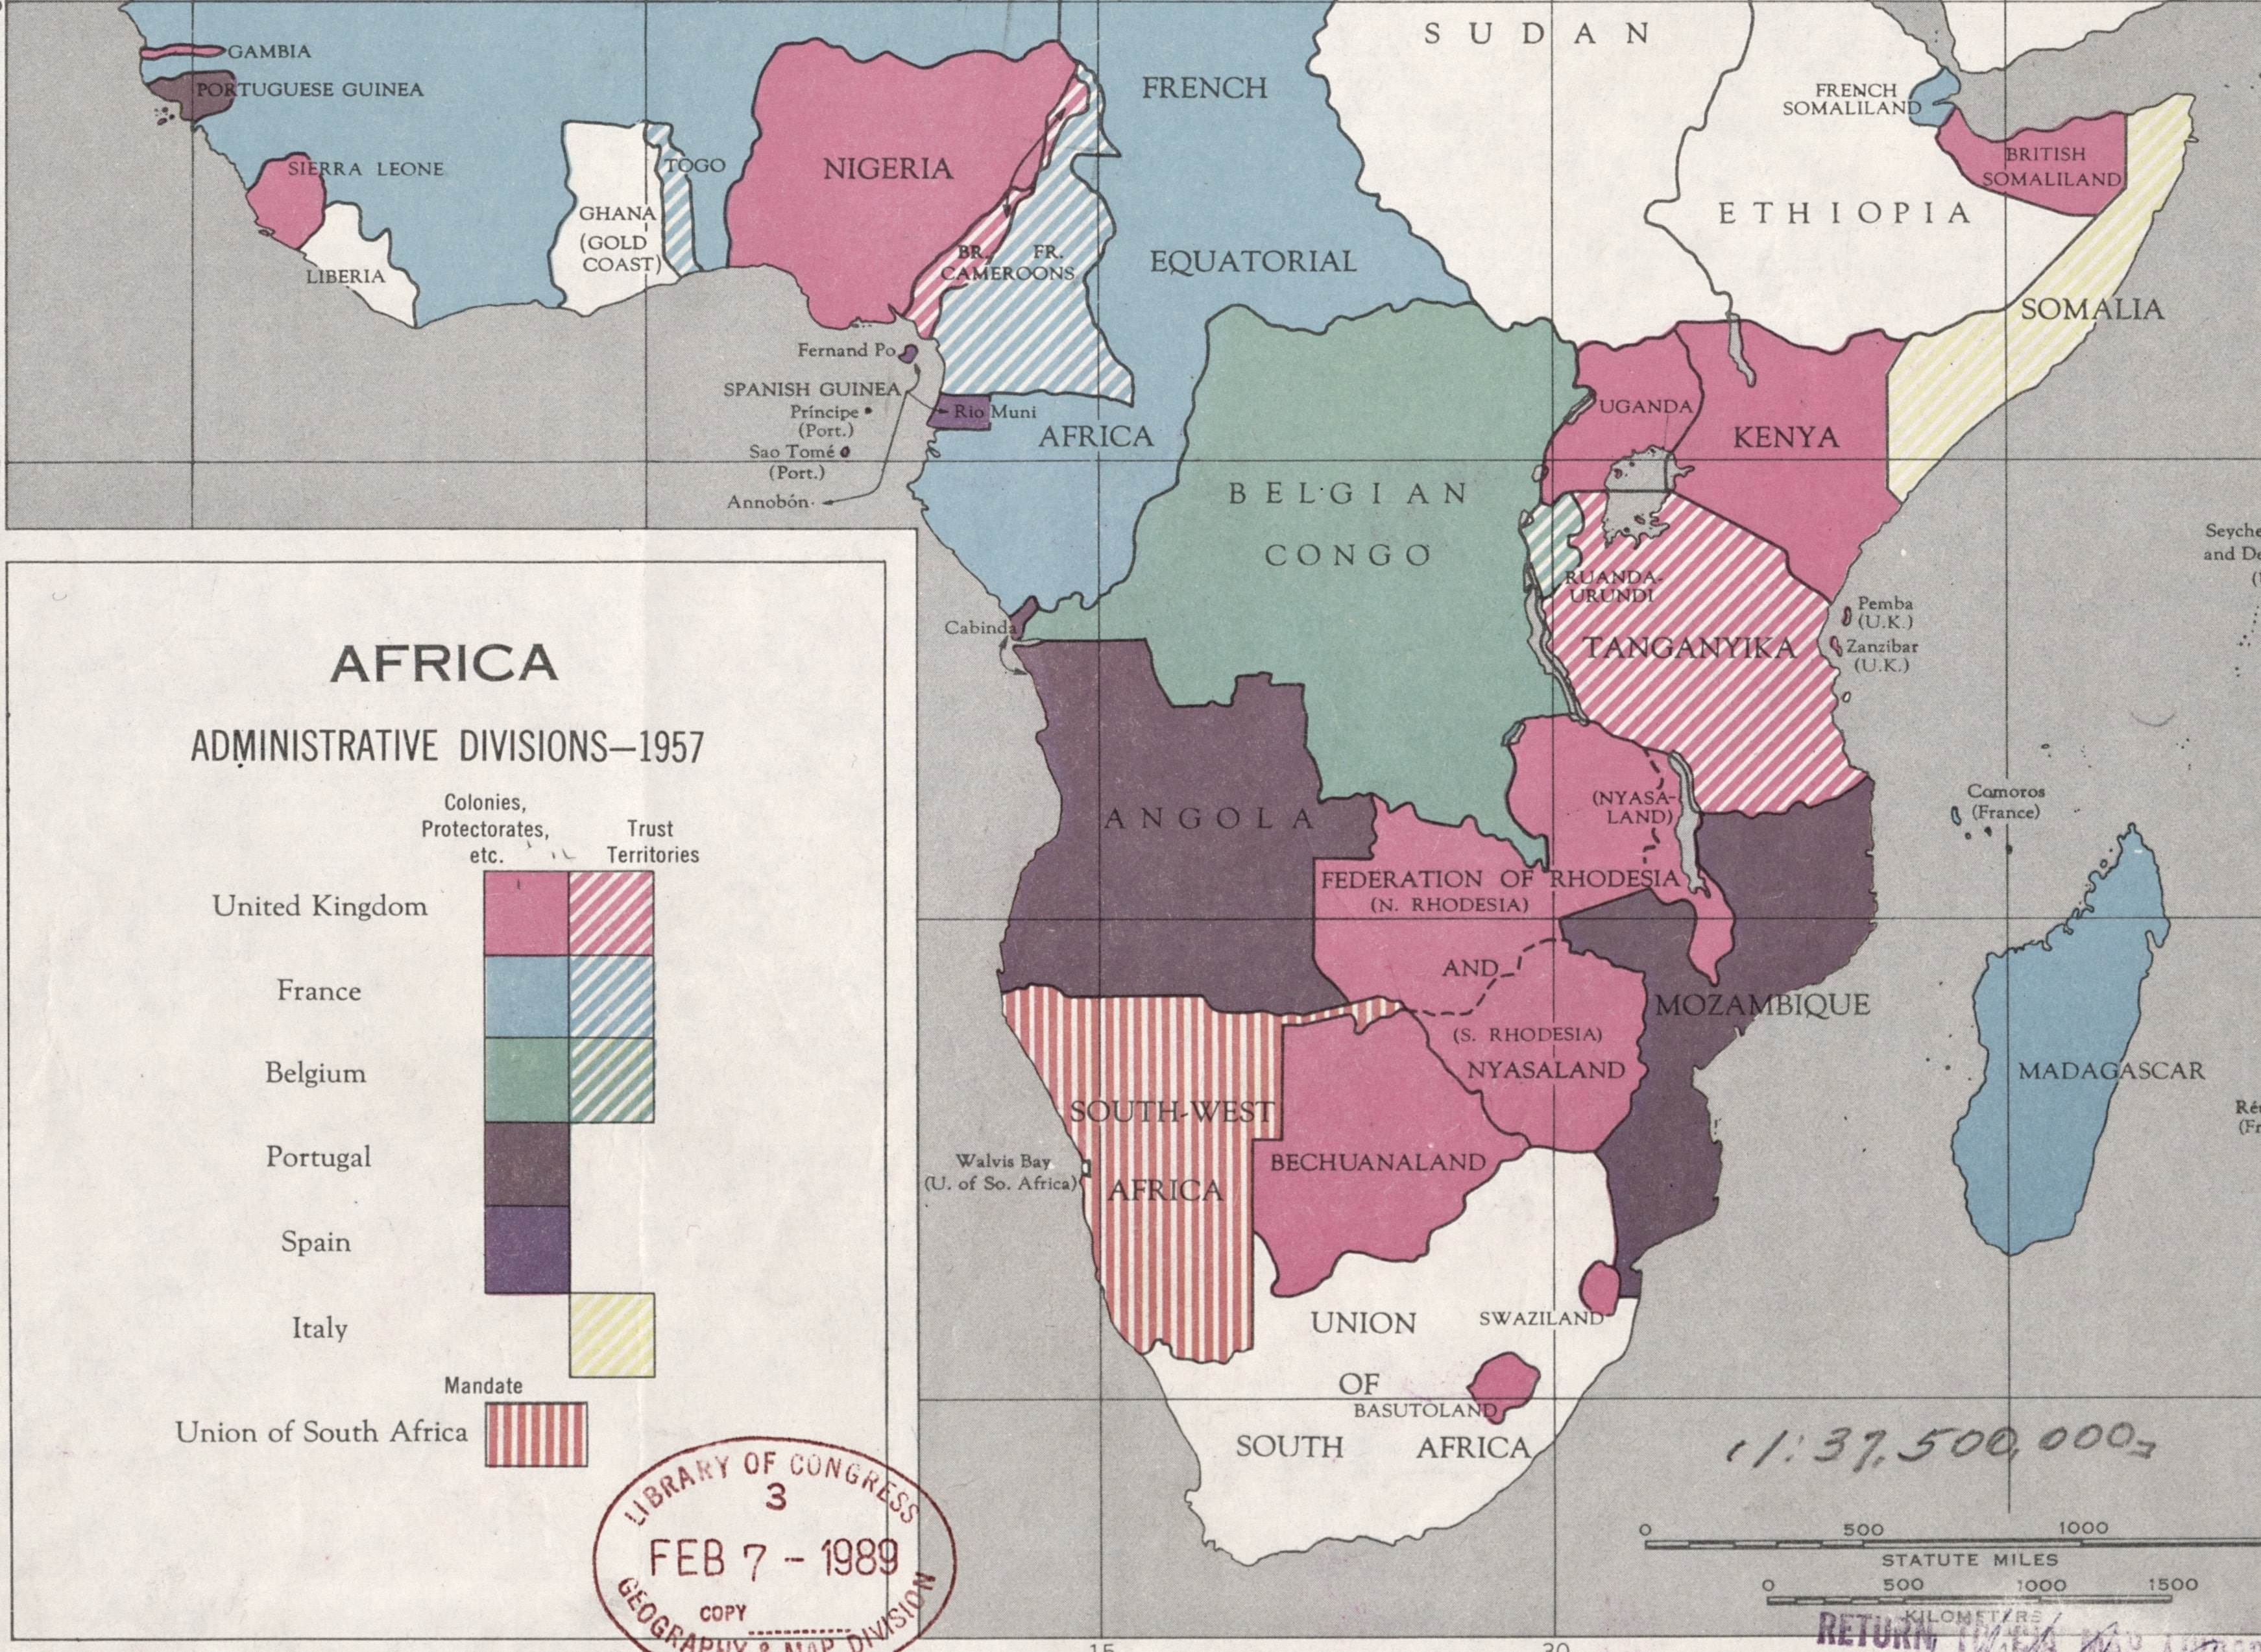 Central and Southern Africa, administrative divisions, 1957.